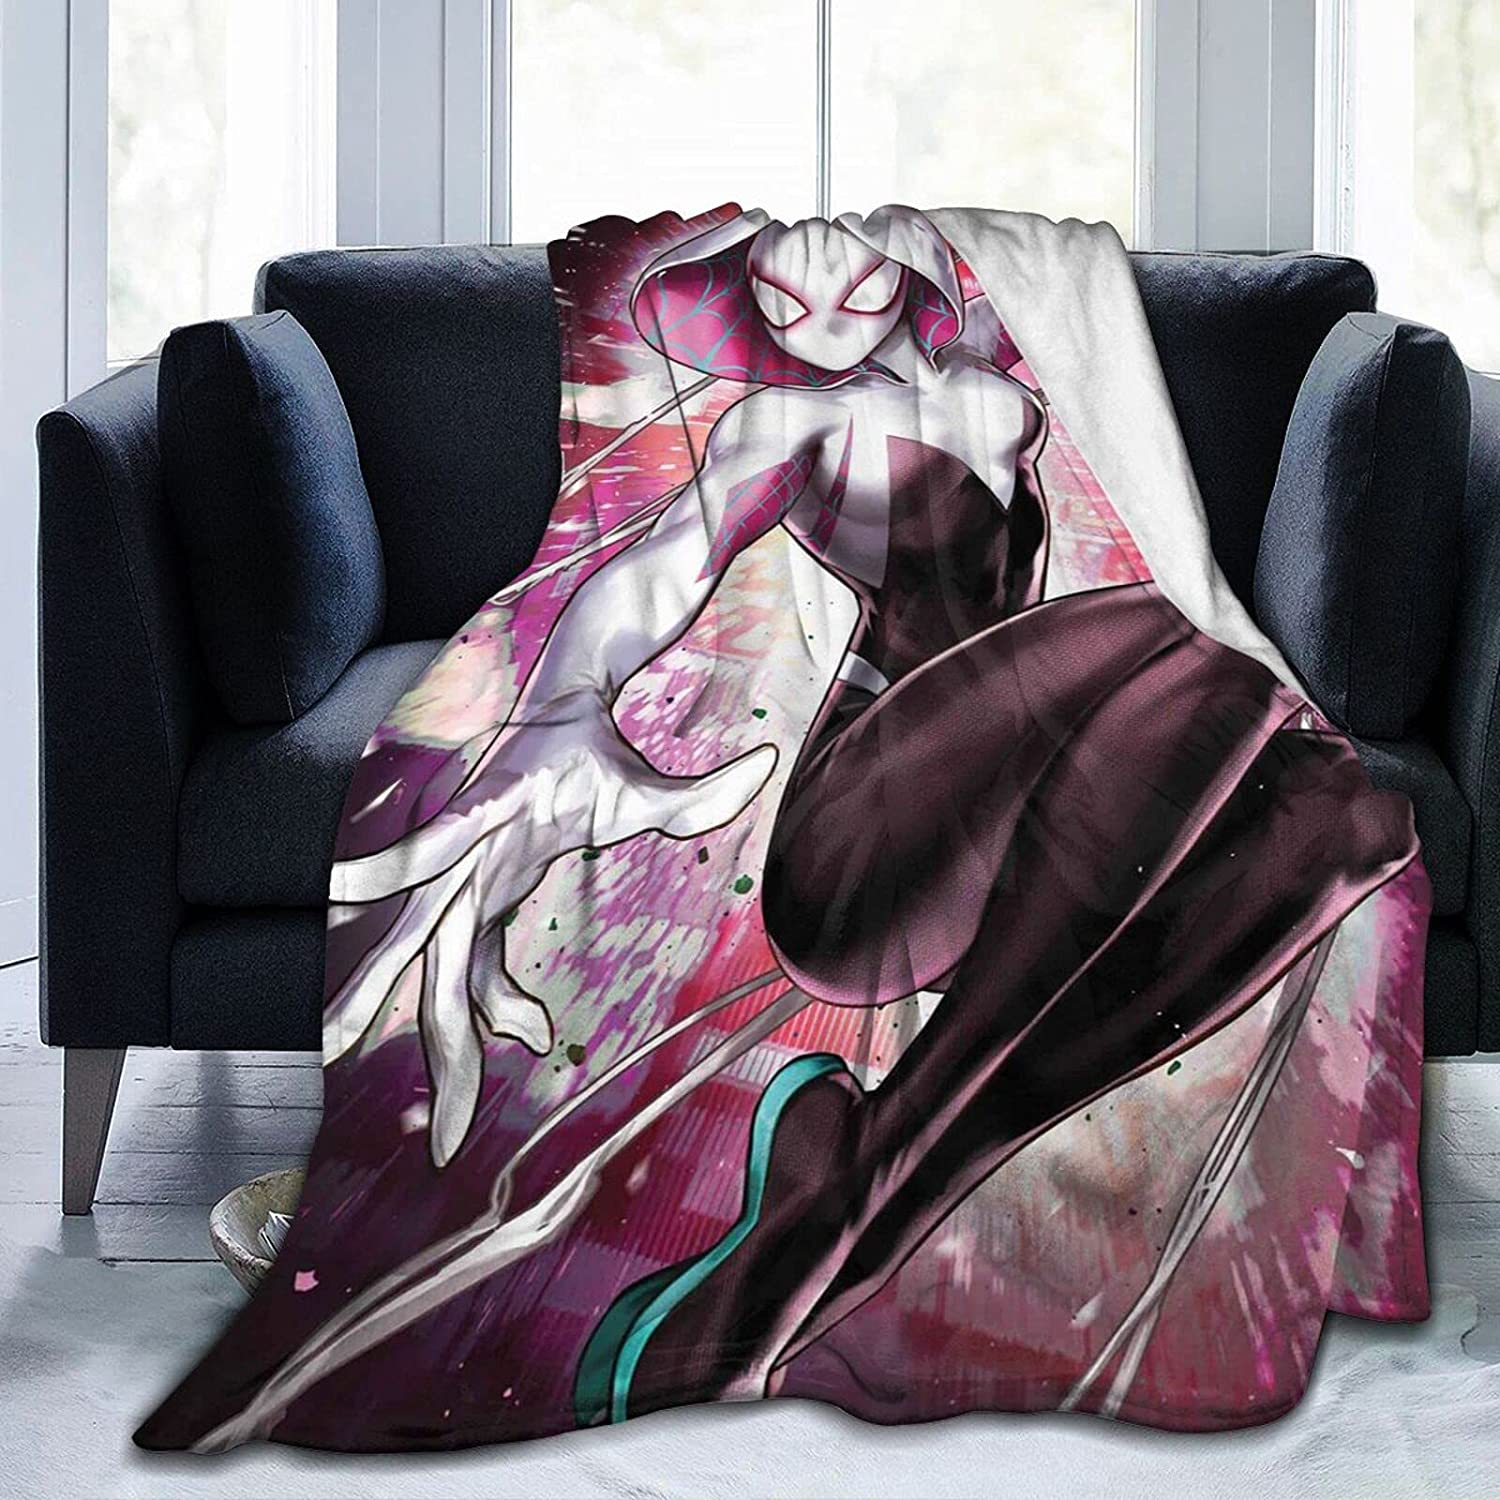 Shunbitop Spider-Gwen Blankets 正規品スーパーSALE×店内全品キャンペーン 5☆好評 and Throws Soft Ind Thermal Super